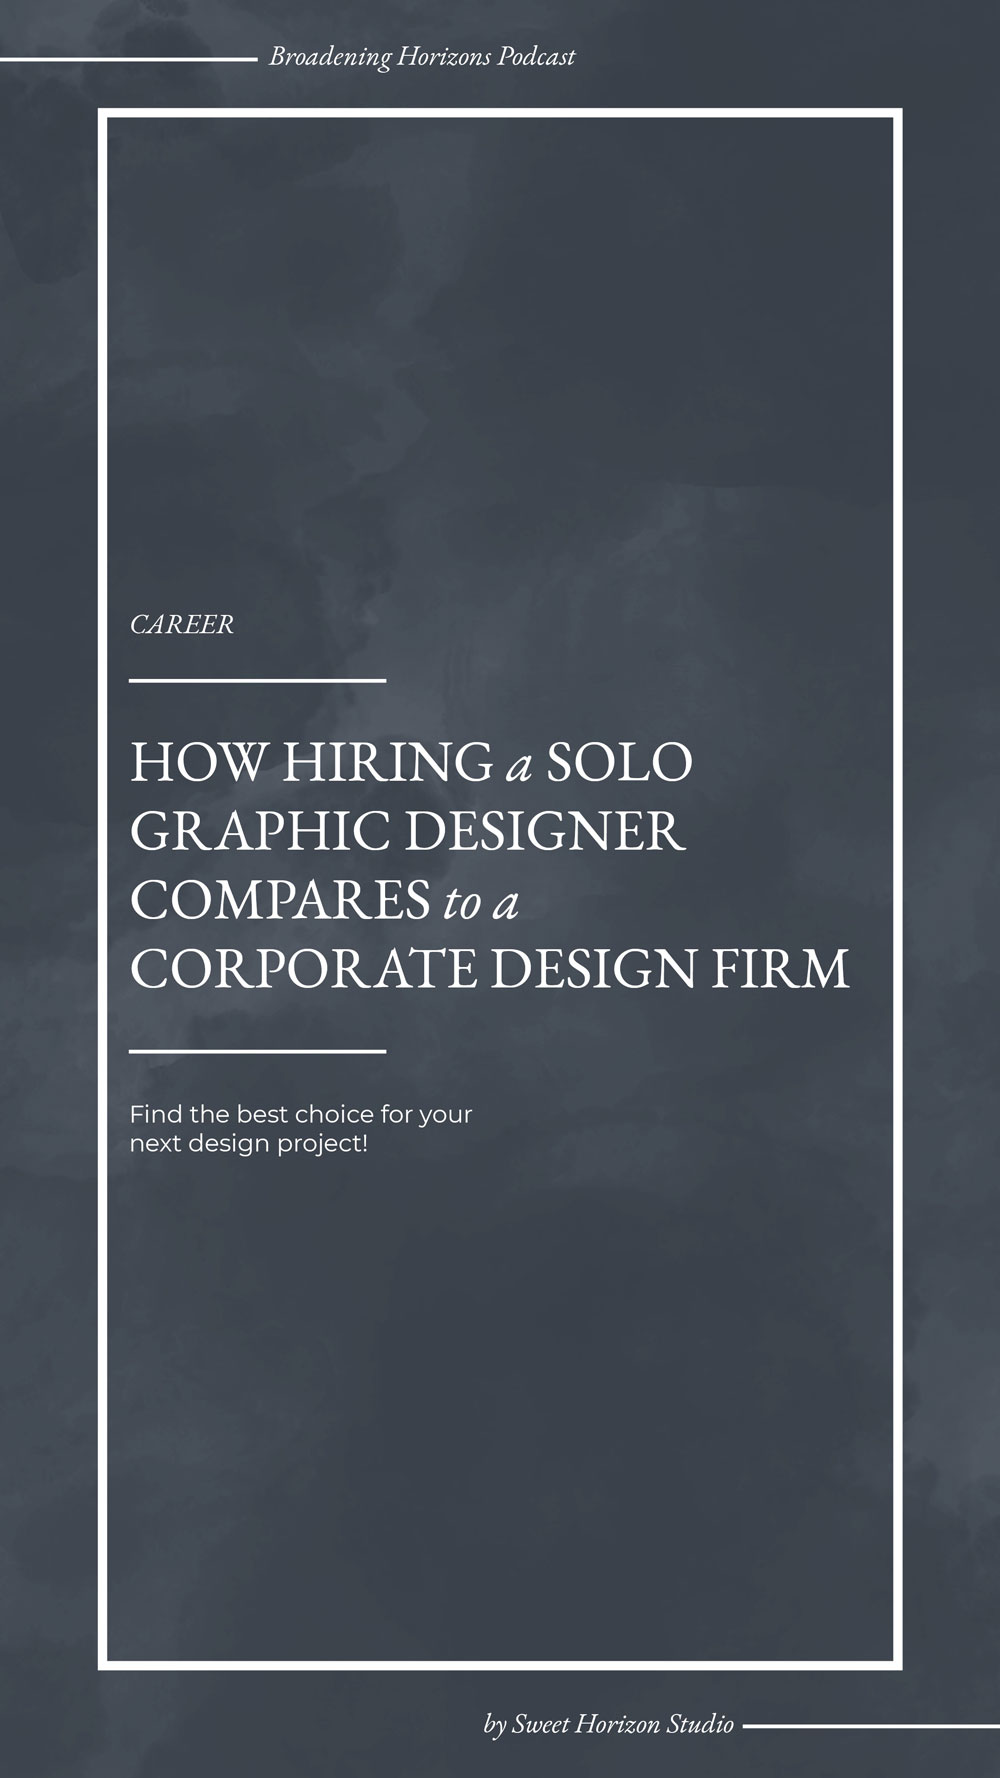 How hiring a solo graphic designer compares to a corporate design firm from www.sweethorizonblog.com